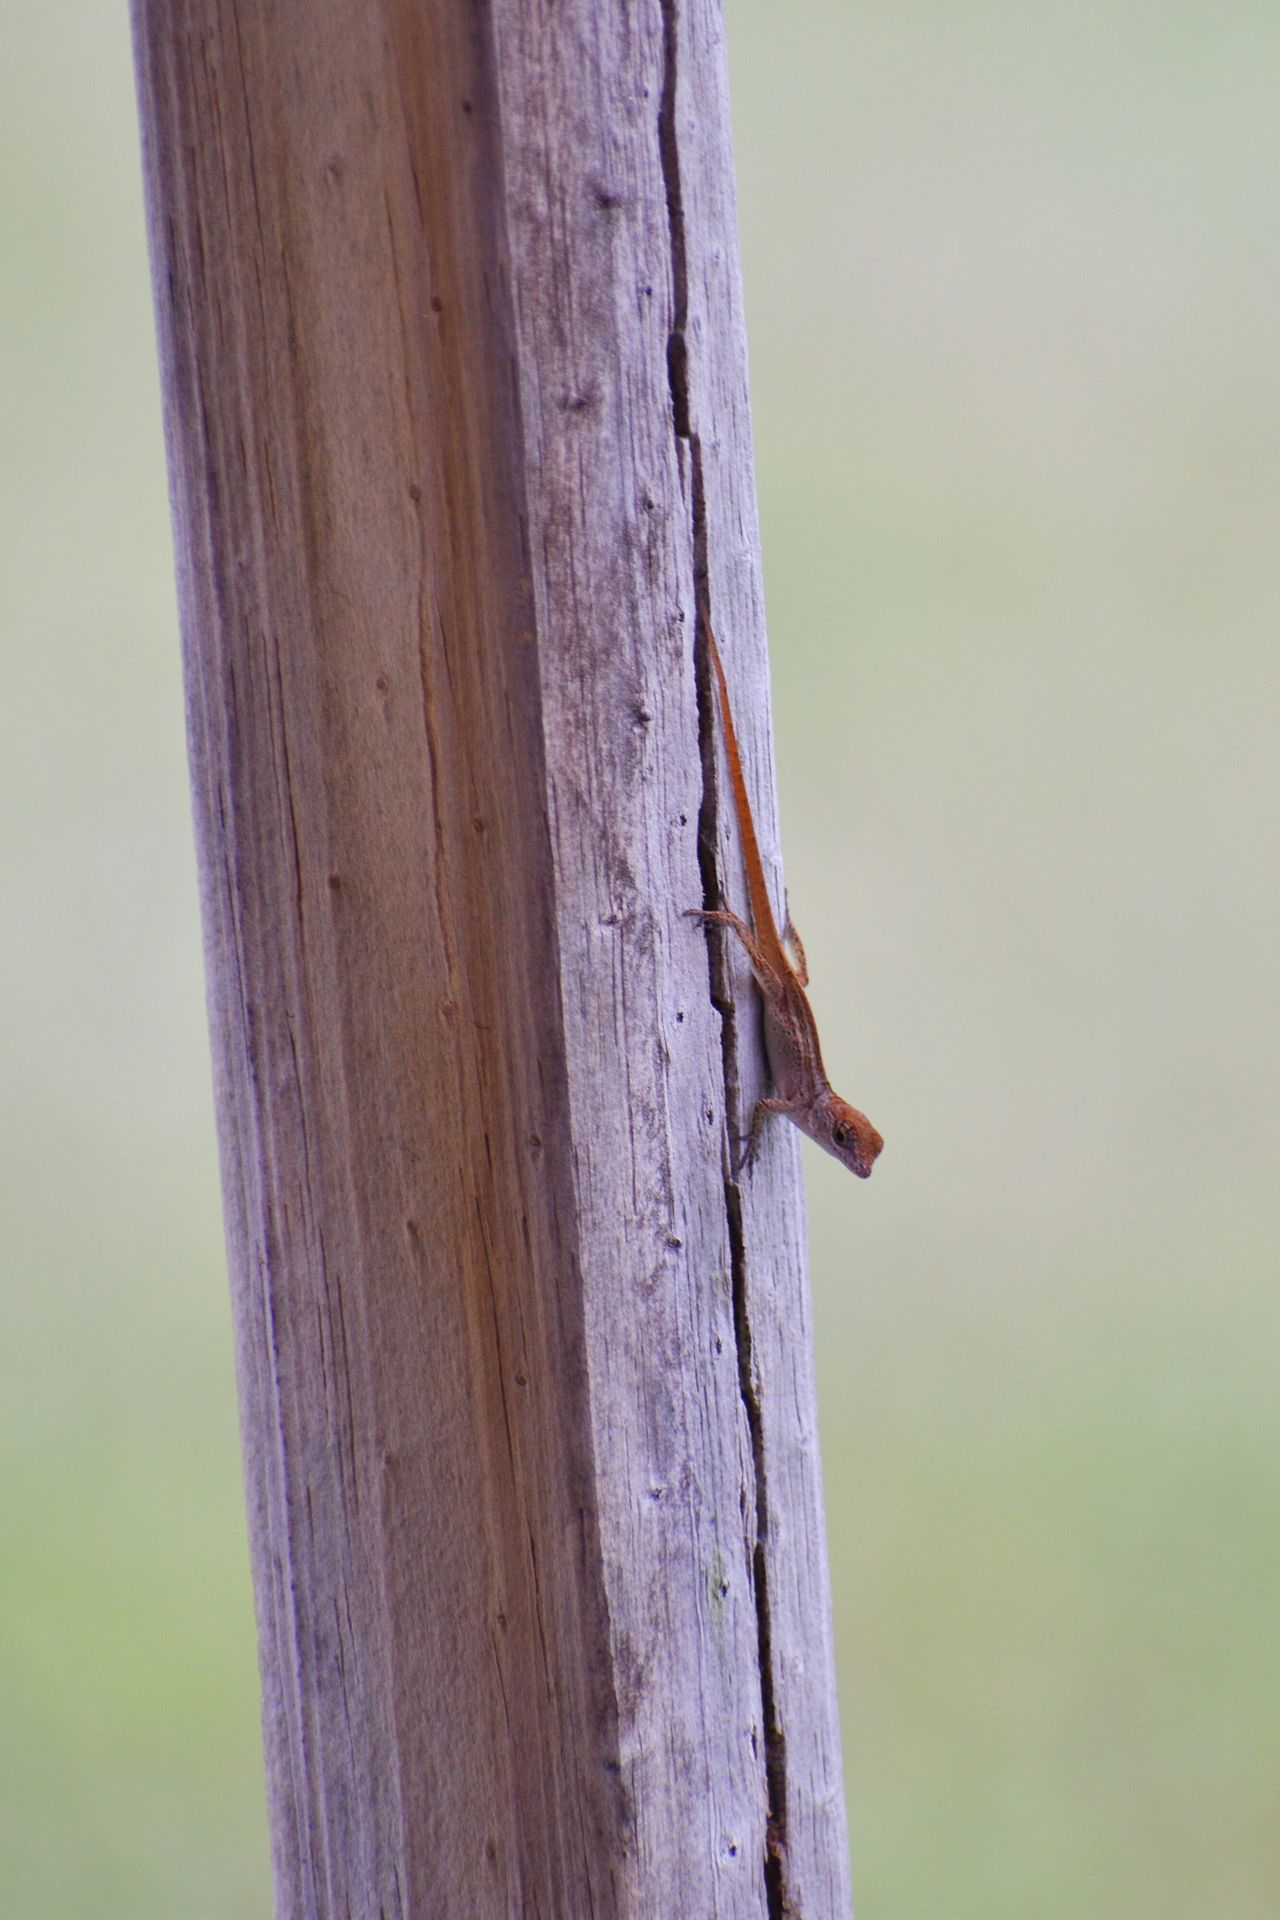 One Animal Animals In The Wild Animal Themes Nature No People Animal Wildlife Tree Trunk Lizard Nature Lizard Nature Reptile Animals In The Wild Focus On Foreground Outdoors Tree Beauty In Nature Perching Reptile Close-up Bird Mammal